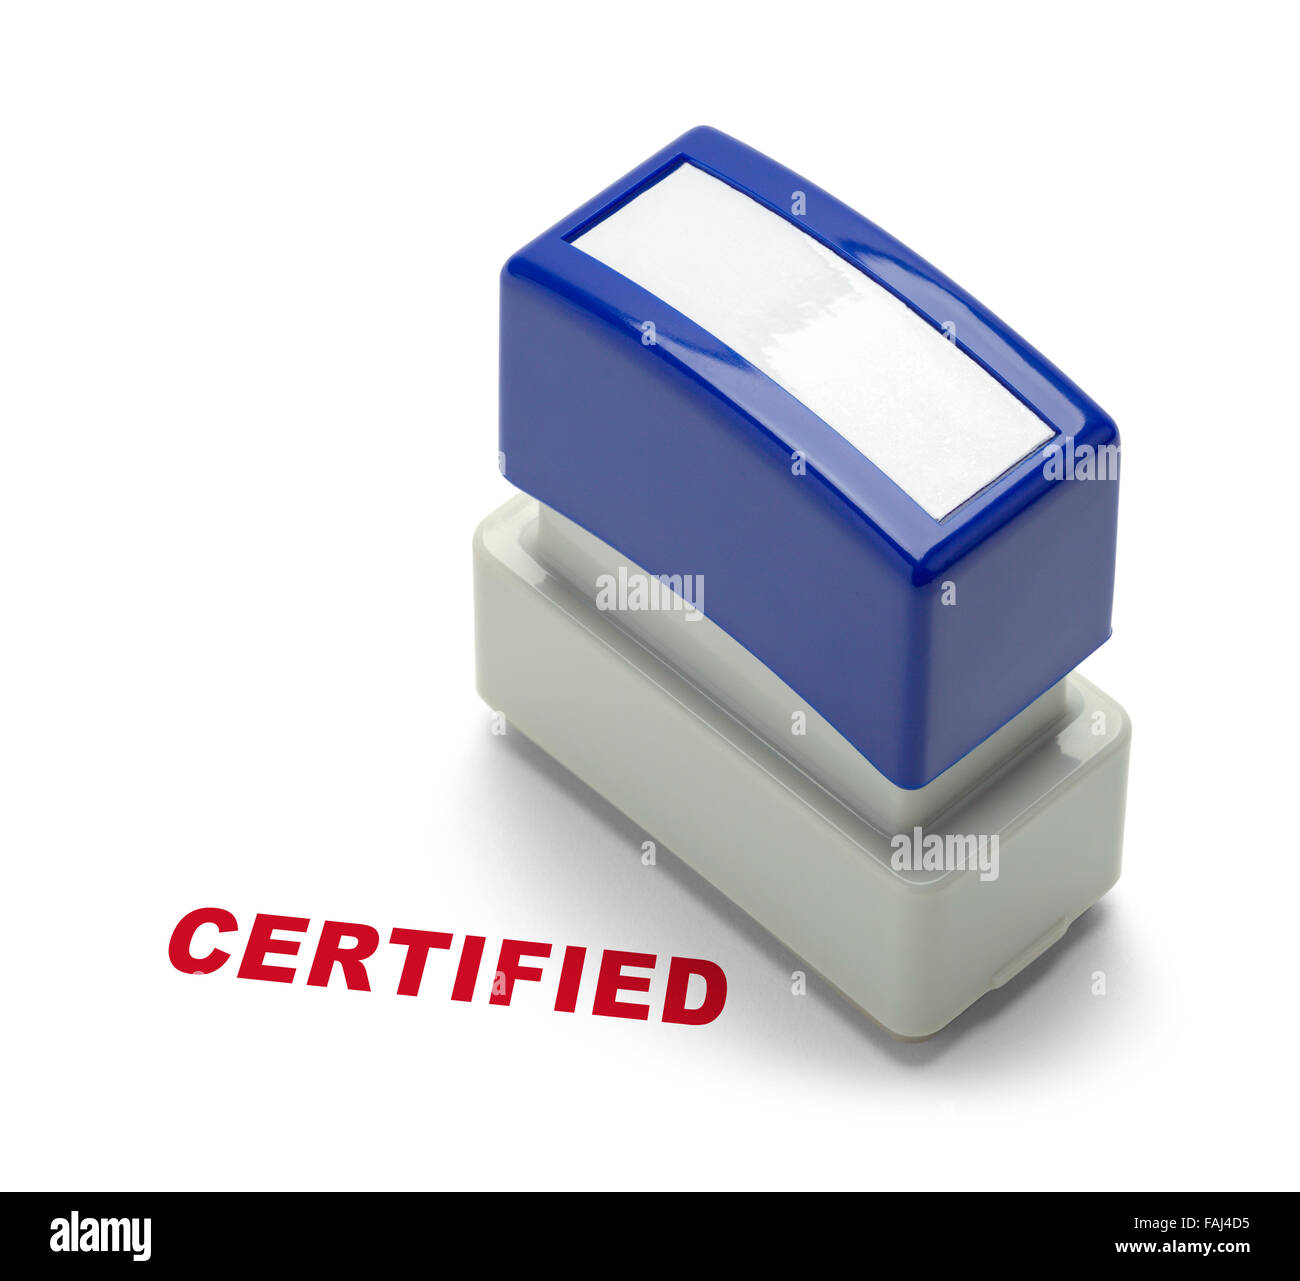 Business Certified Stamper Isolated on a White Background. - Stock Image